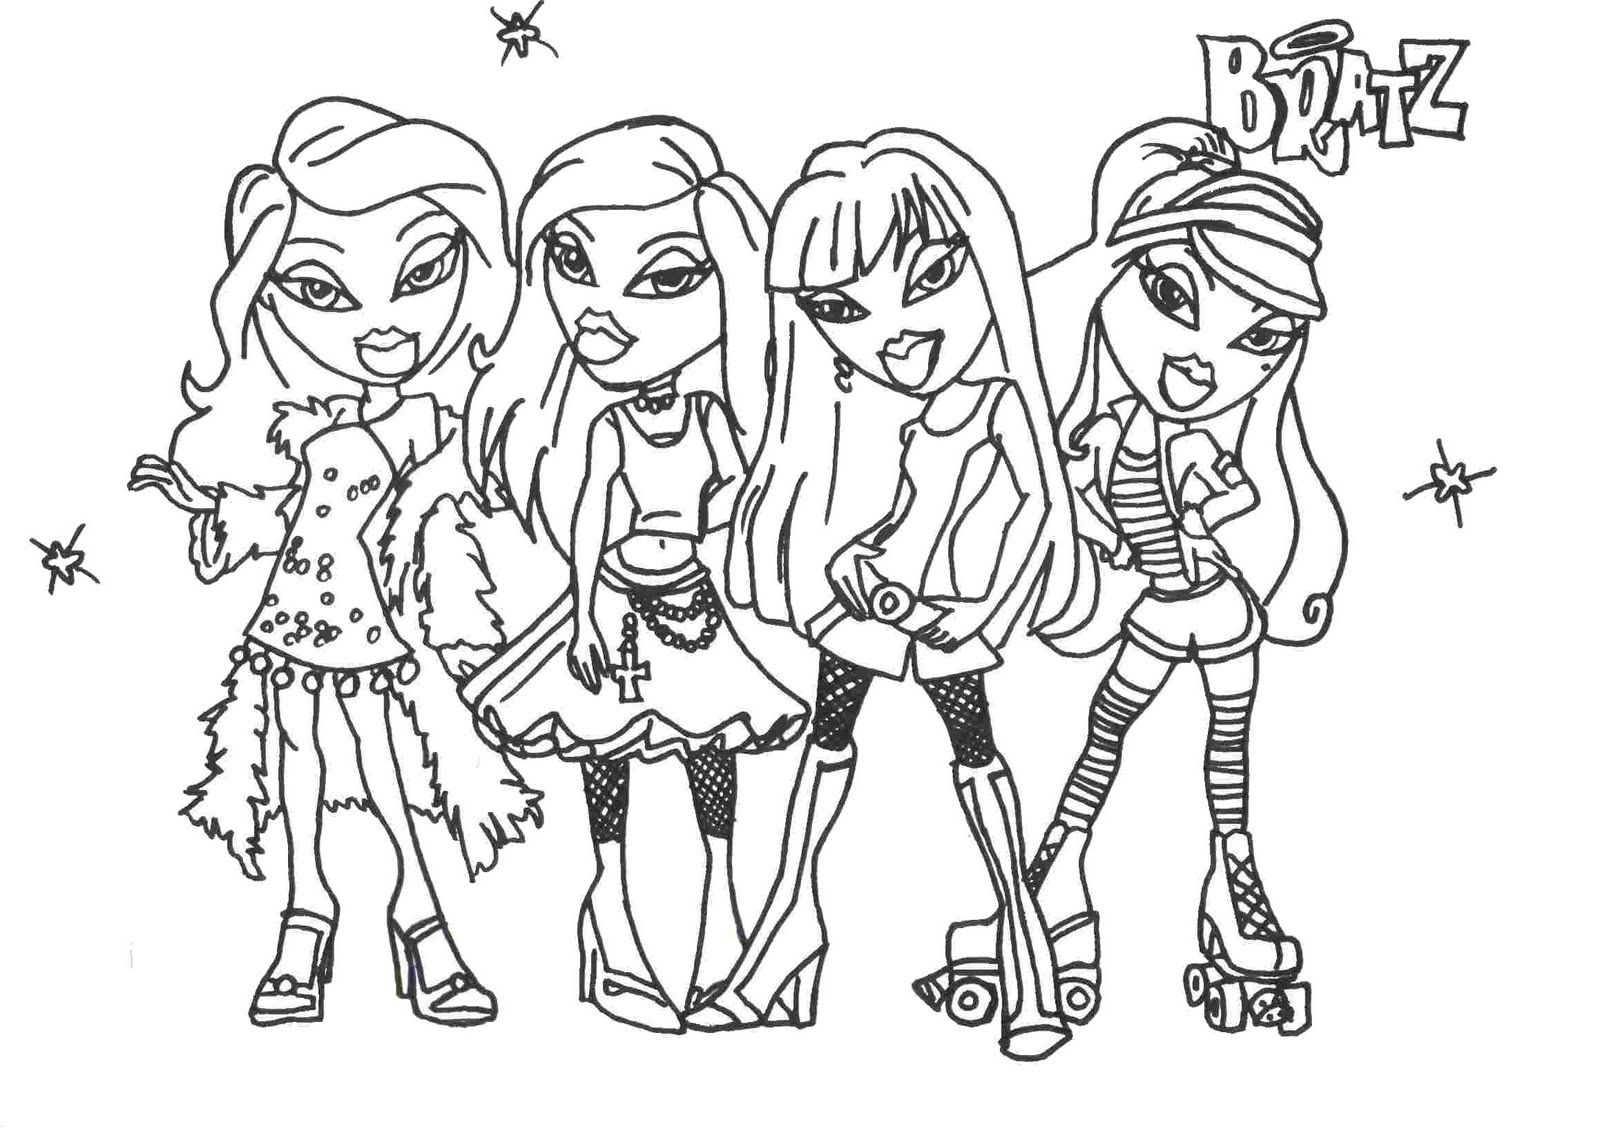 Coloring pages to print for girls - Bratz Fashion Coloring Page Printable Coloring Pages Sheets For Kids Get The Latest Free Bratz Fashion Coloring Page Images Favorite Coloring Pages To